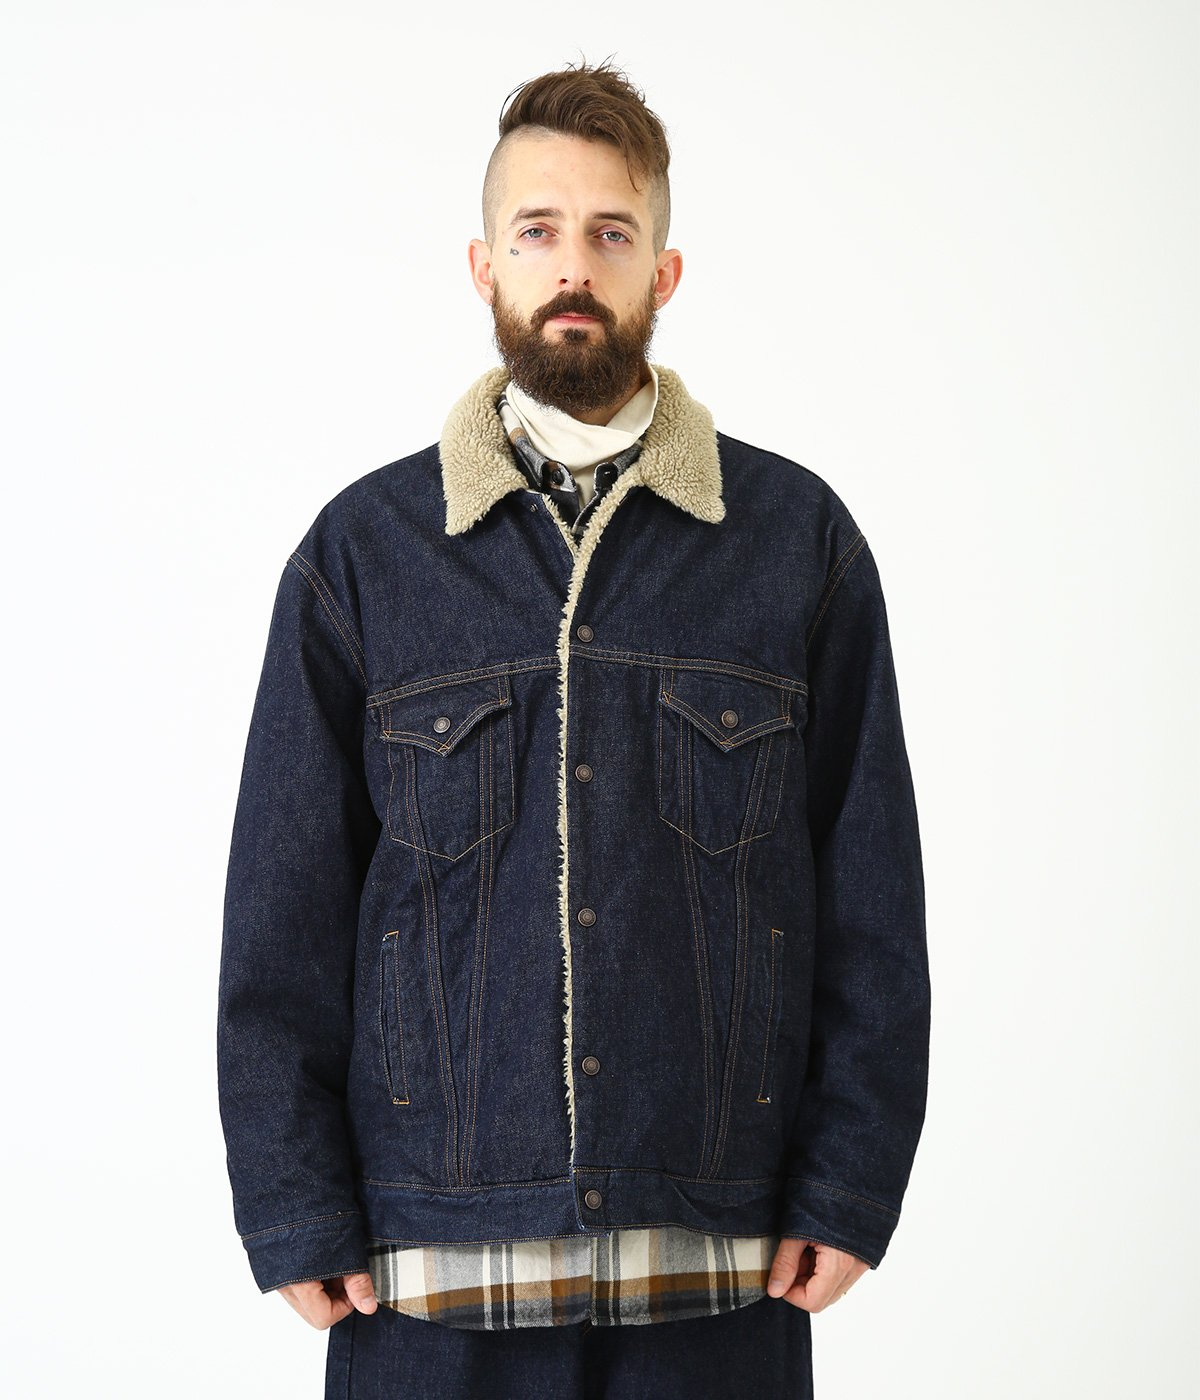 14oz. DENIM JACKET BOA FLEECE LININNG